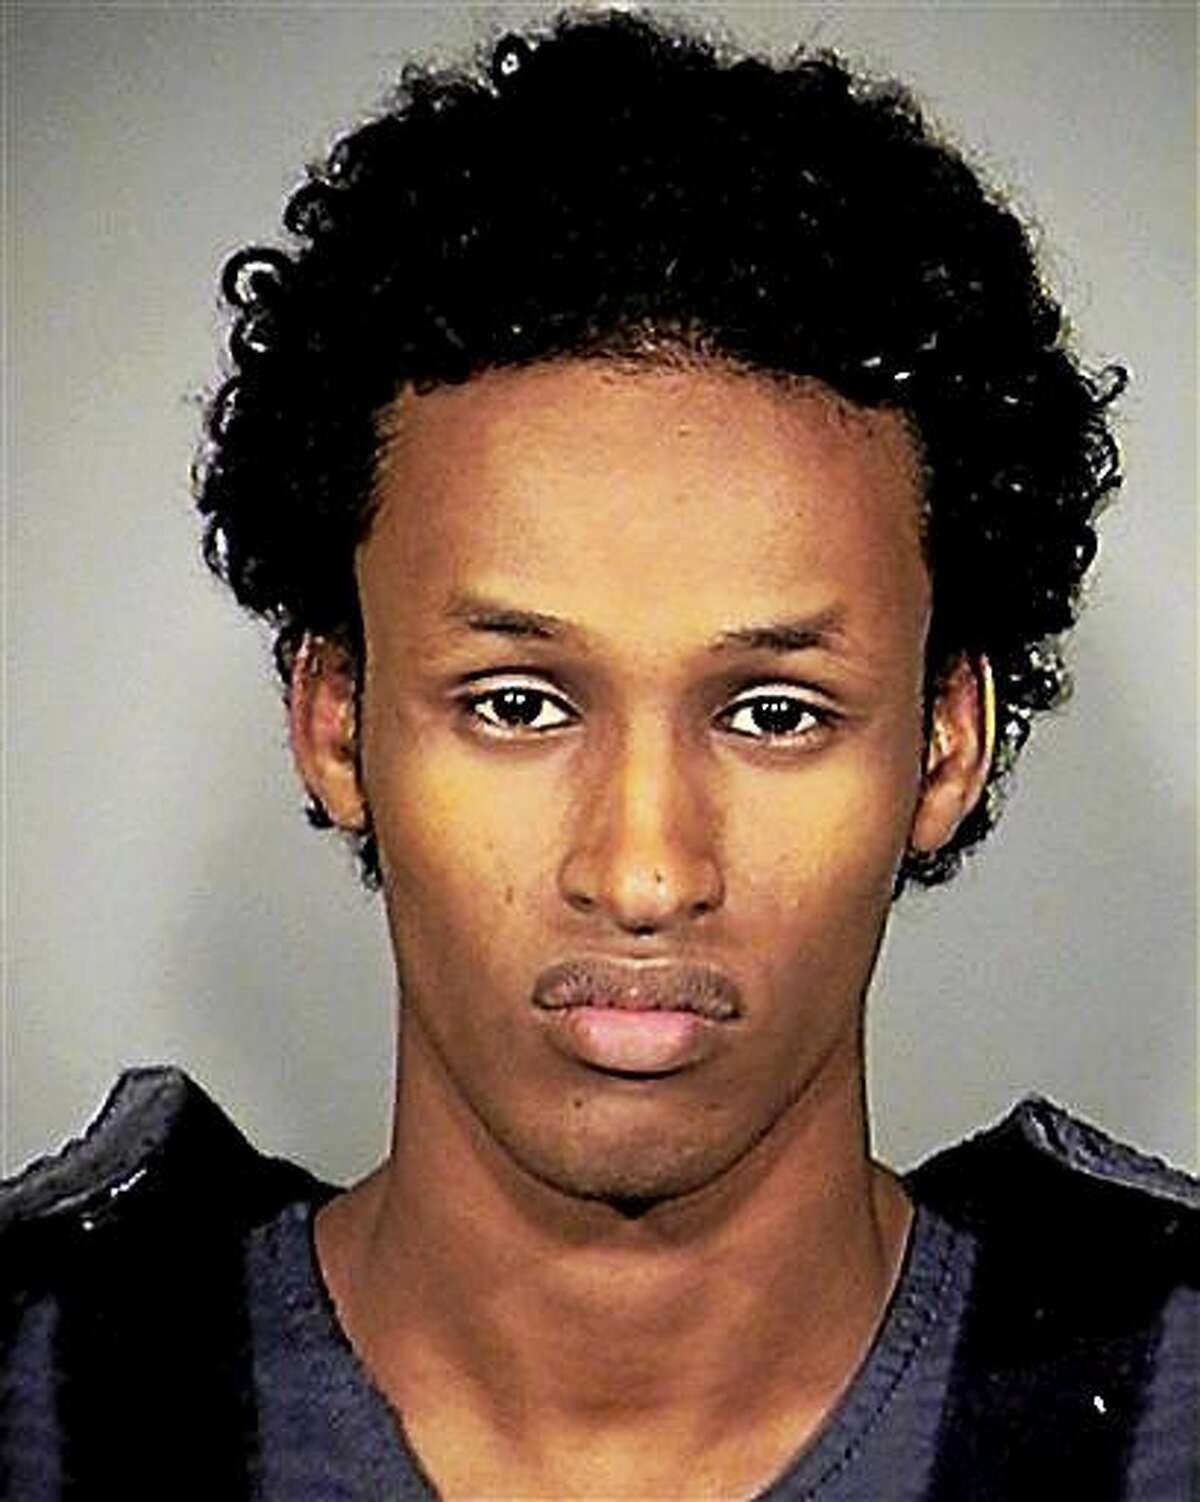 FILE - A Nov. 27, 2010, file photo provided by the Multnomah County, Ore., Sheriff's Office, shows Mohamed Mohamud. Nearly four years after 19-year-old Mohamud showed up at a Christmas tree lighting ceremony in Portland, Ore., and triggered what turned out to be a fake bomb provided by the FBI, he is scheduled to be sentenced Wednesday, Oct. 1, 2014. (AP Photo/Multnomah County Sheriff's Office, File)